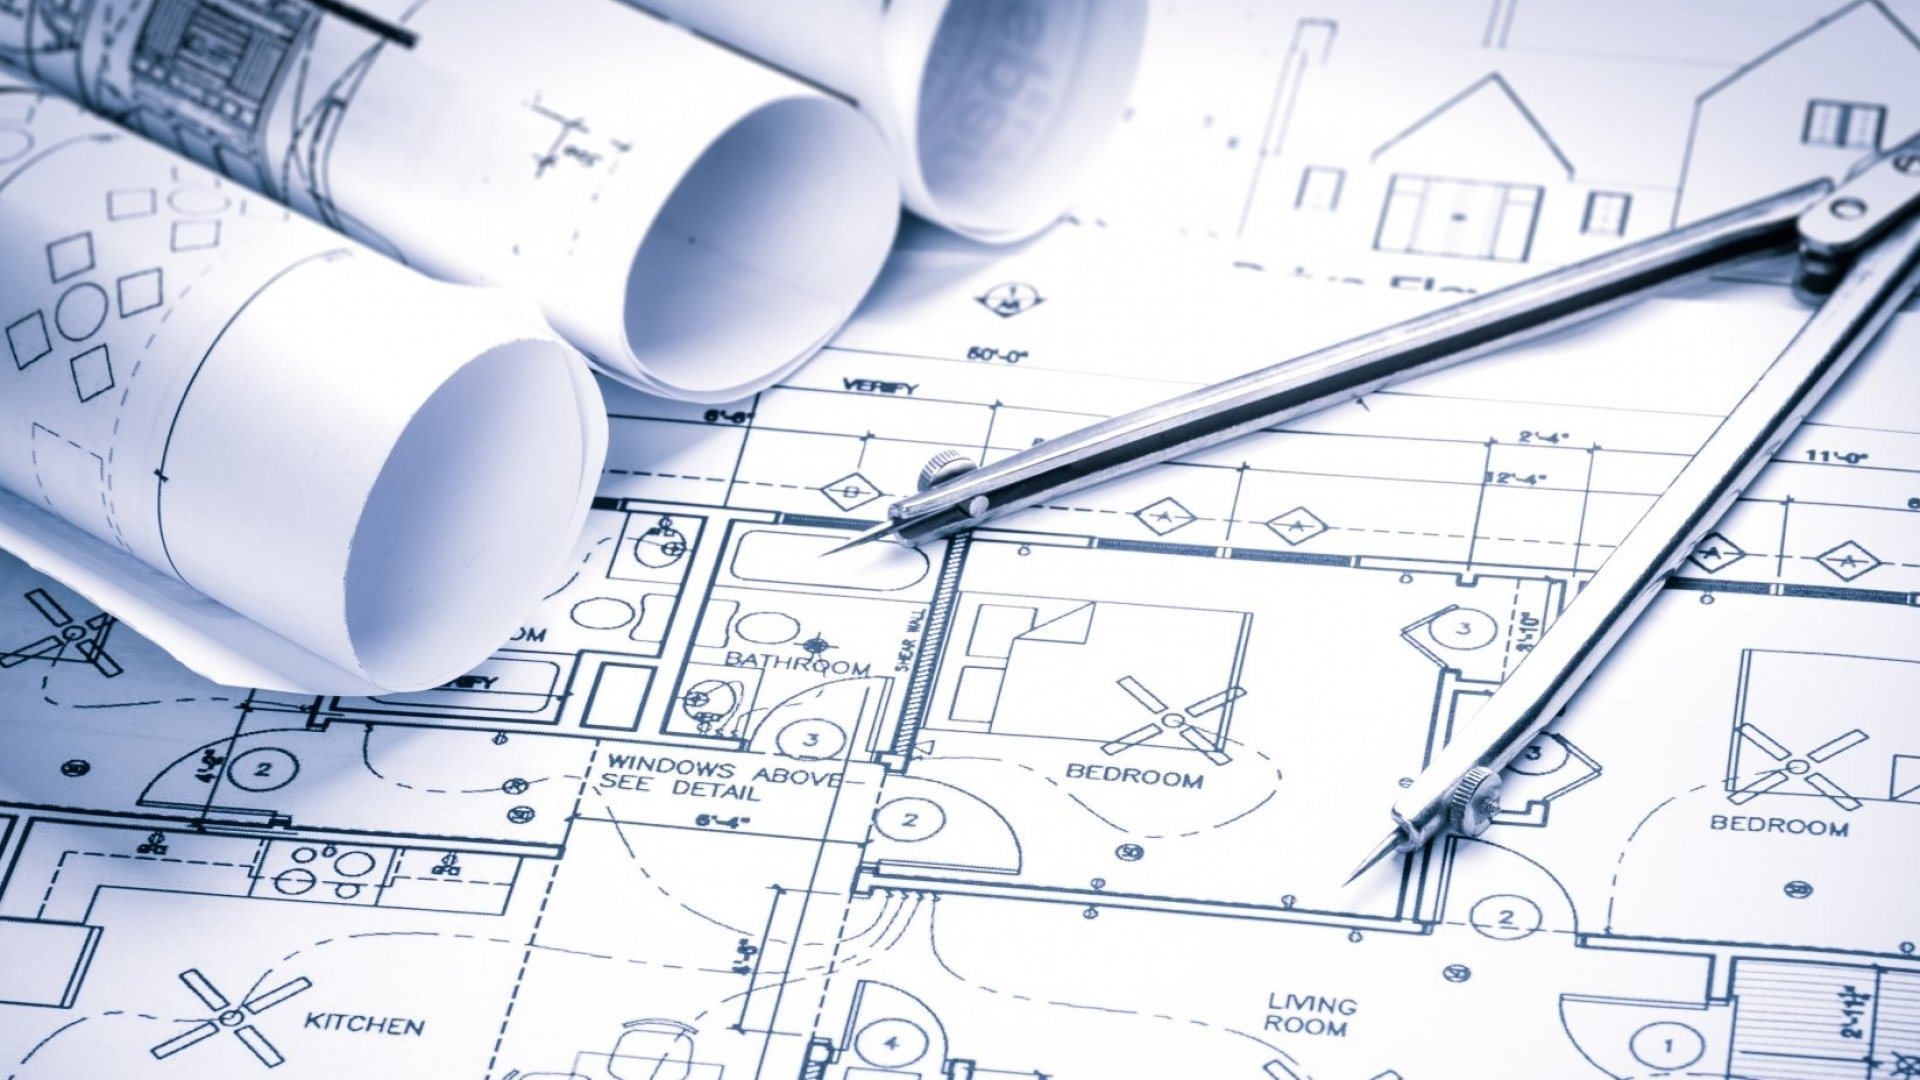 Architectural drawings/blueprints.